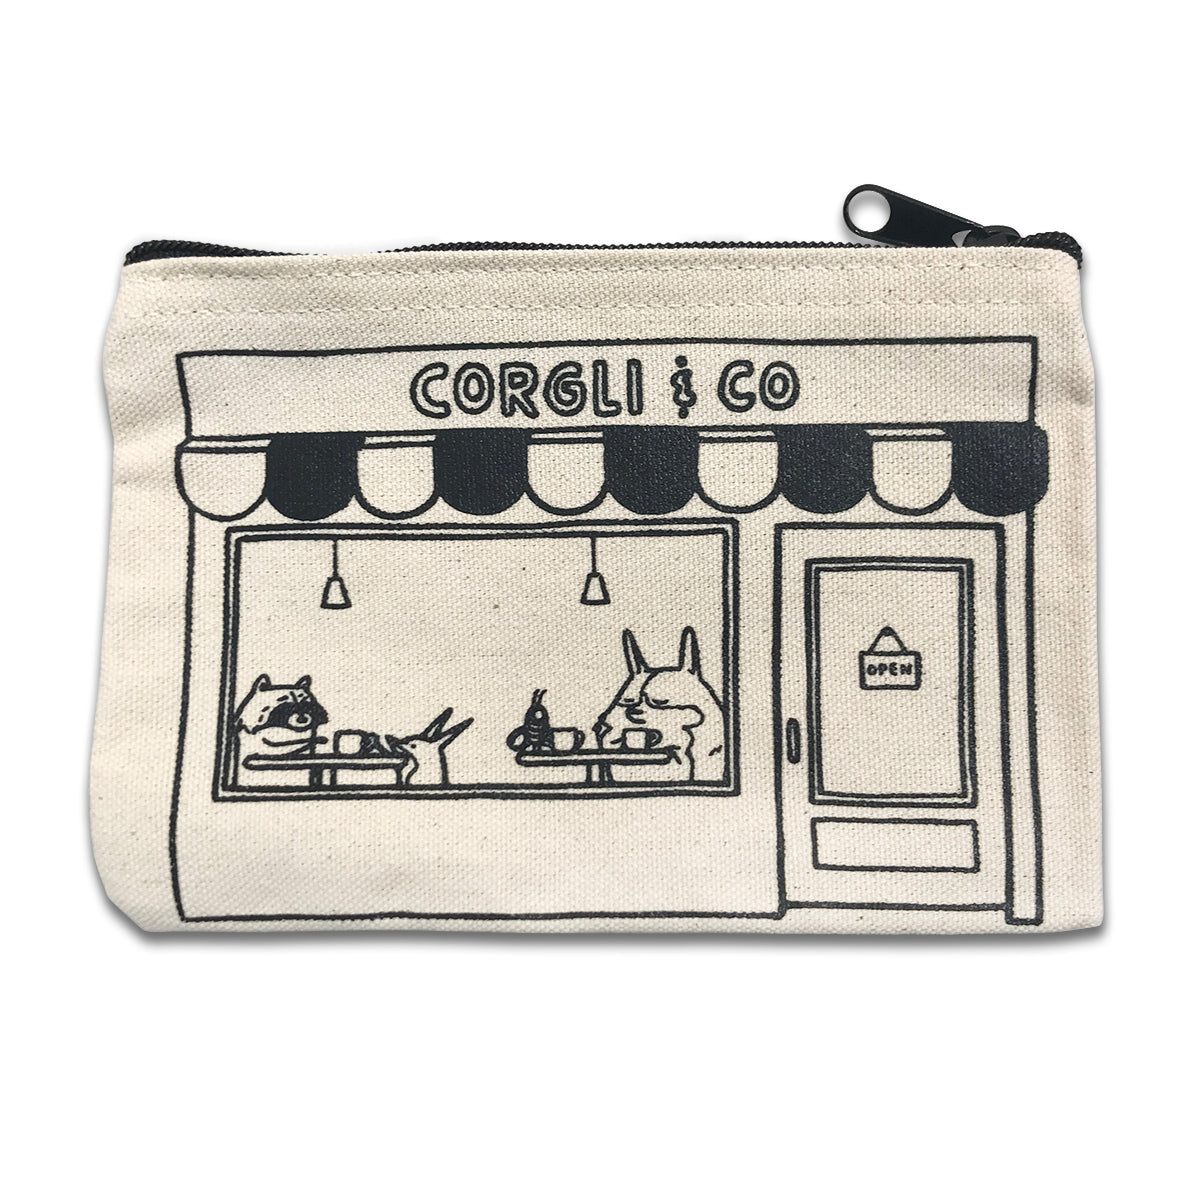 Corgli & Co Cafe zipper pouch.